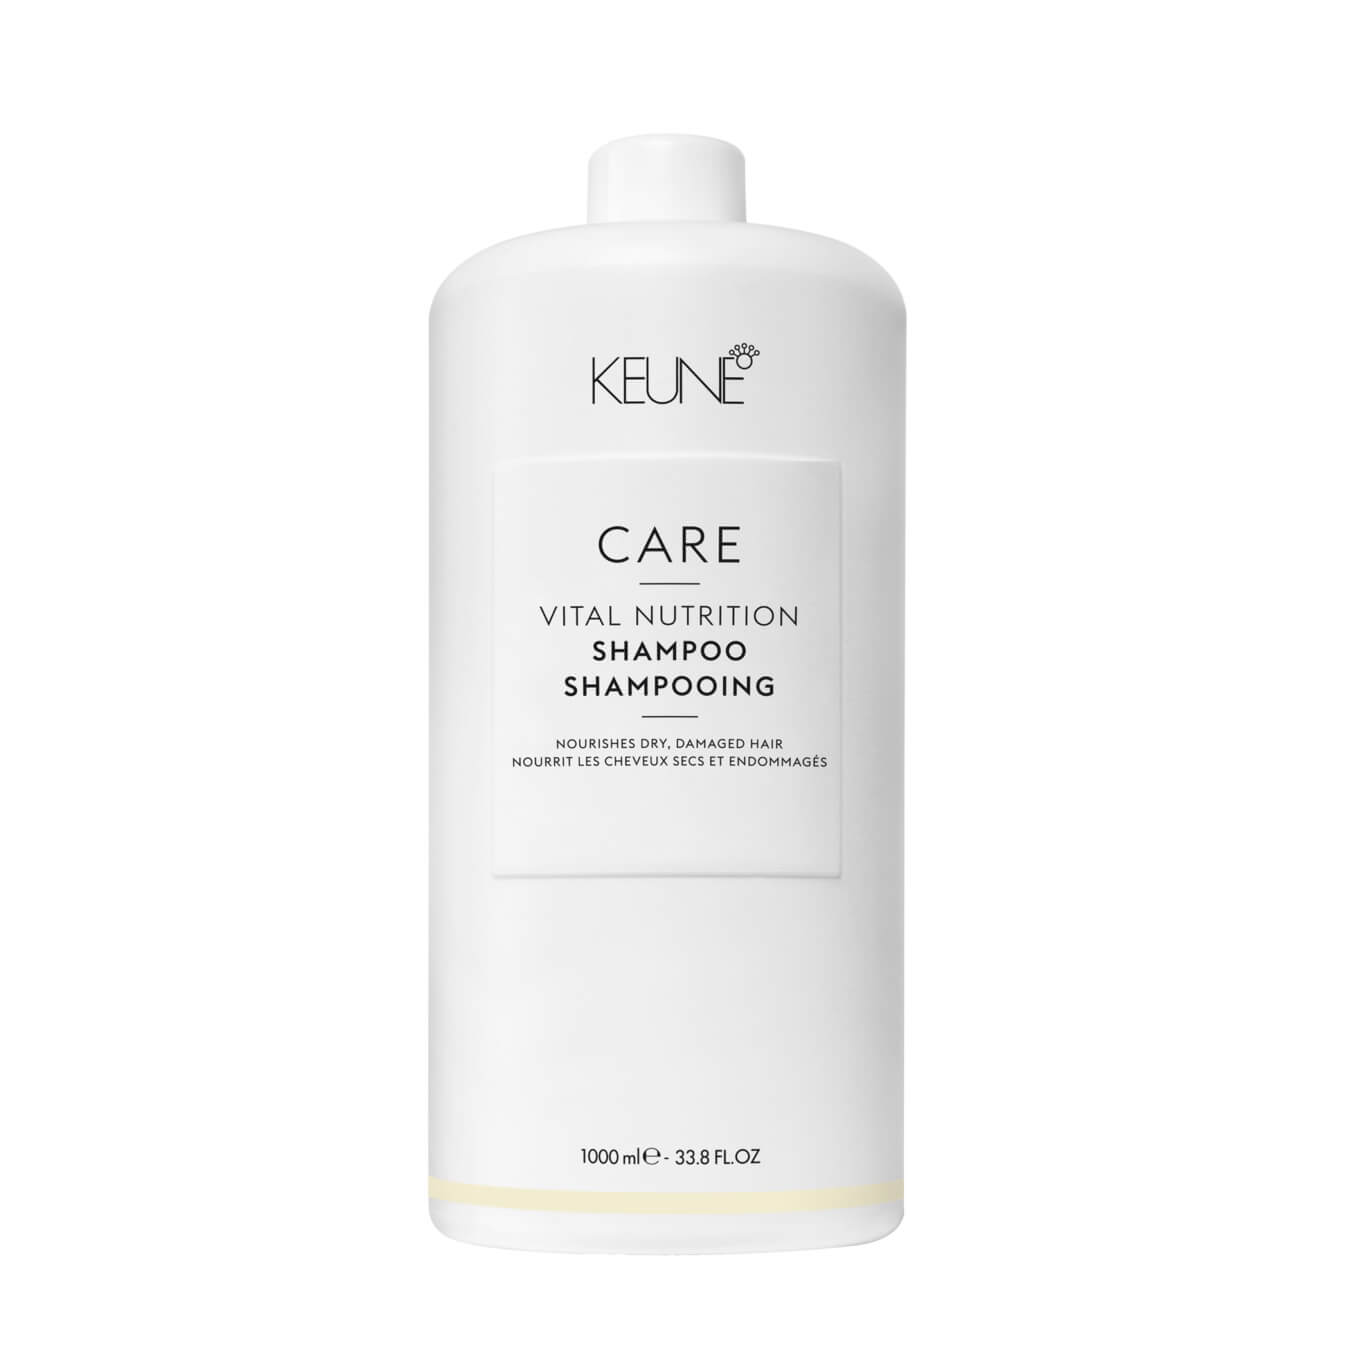 Koop Keune Care Vital Nutrition Shampoo 1000ml